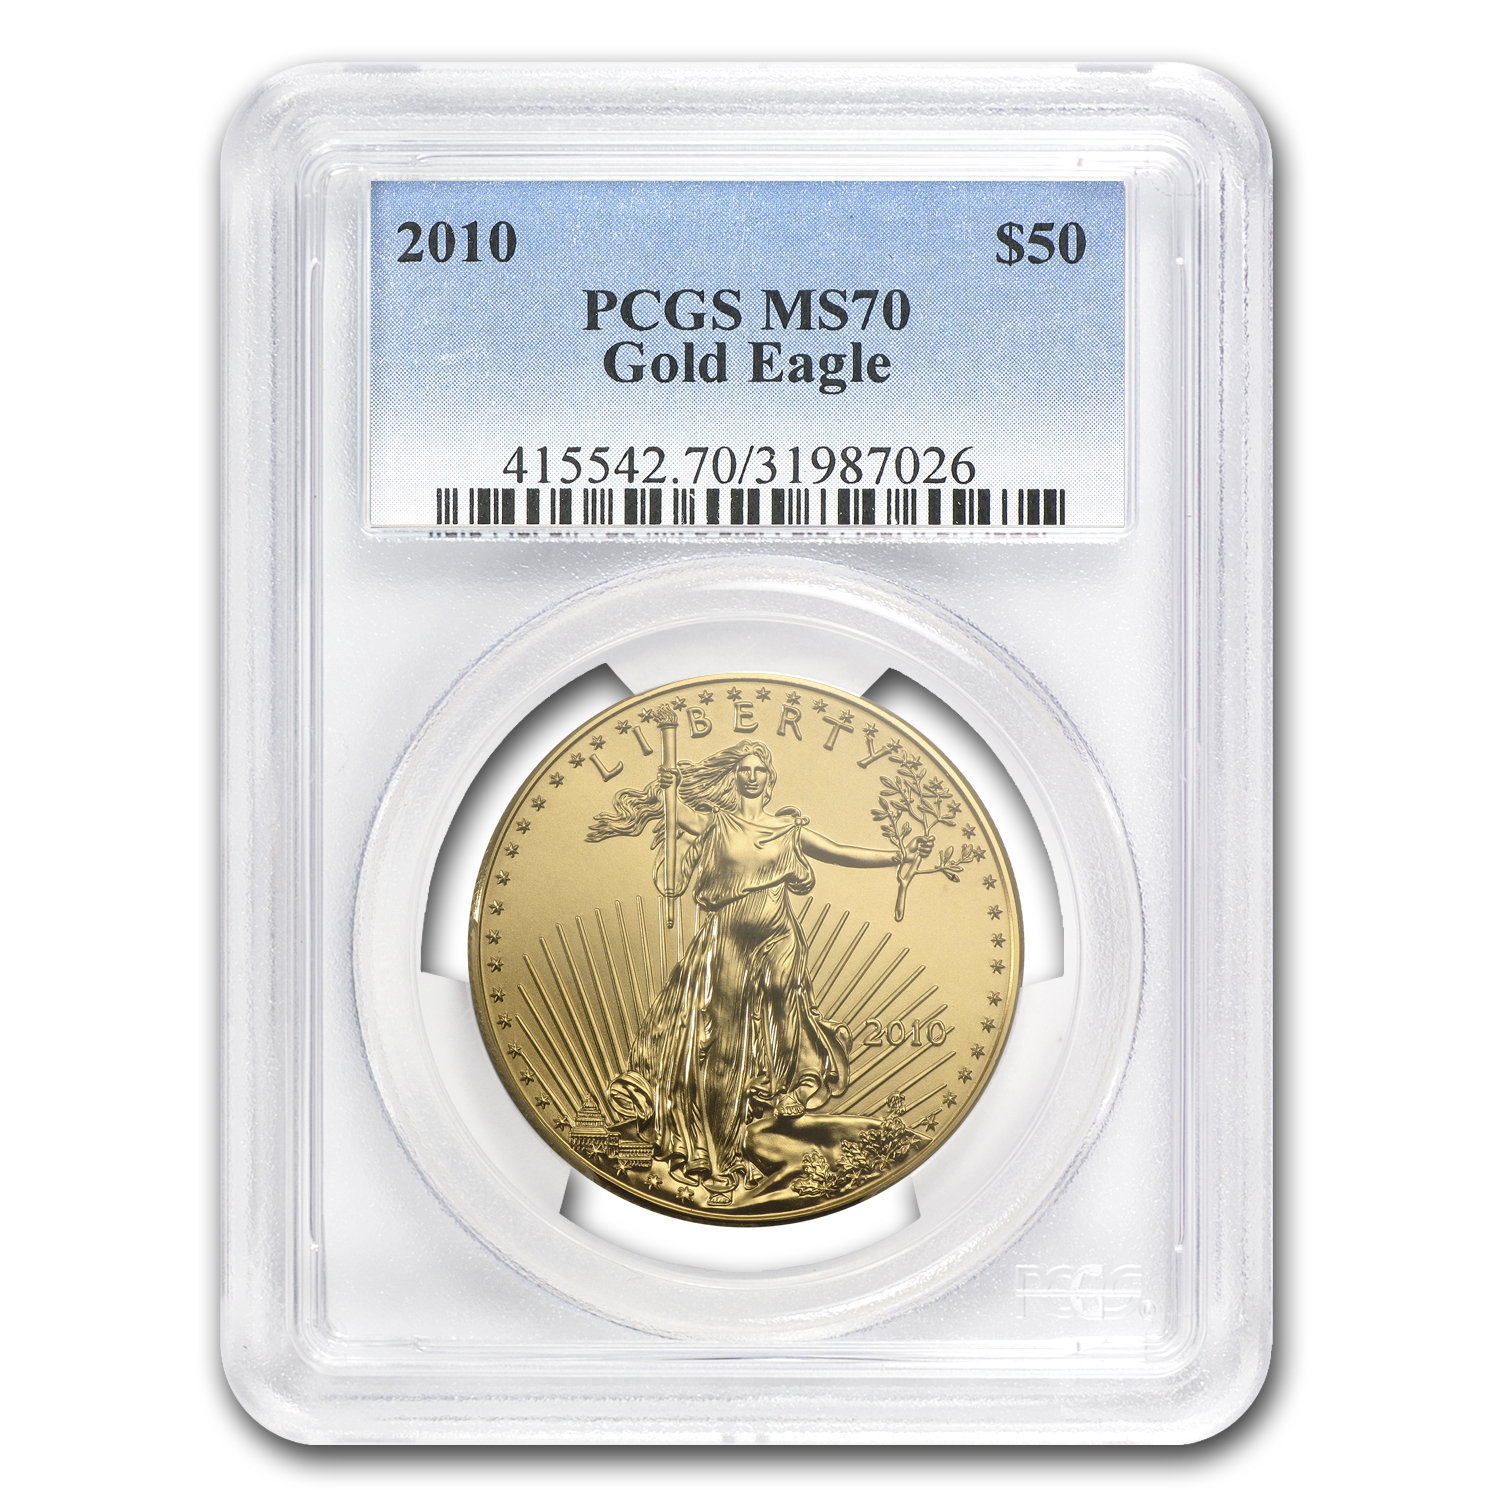 2010 1 oz Gold American Eagle MS-70 PCGS